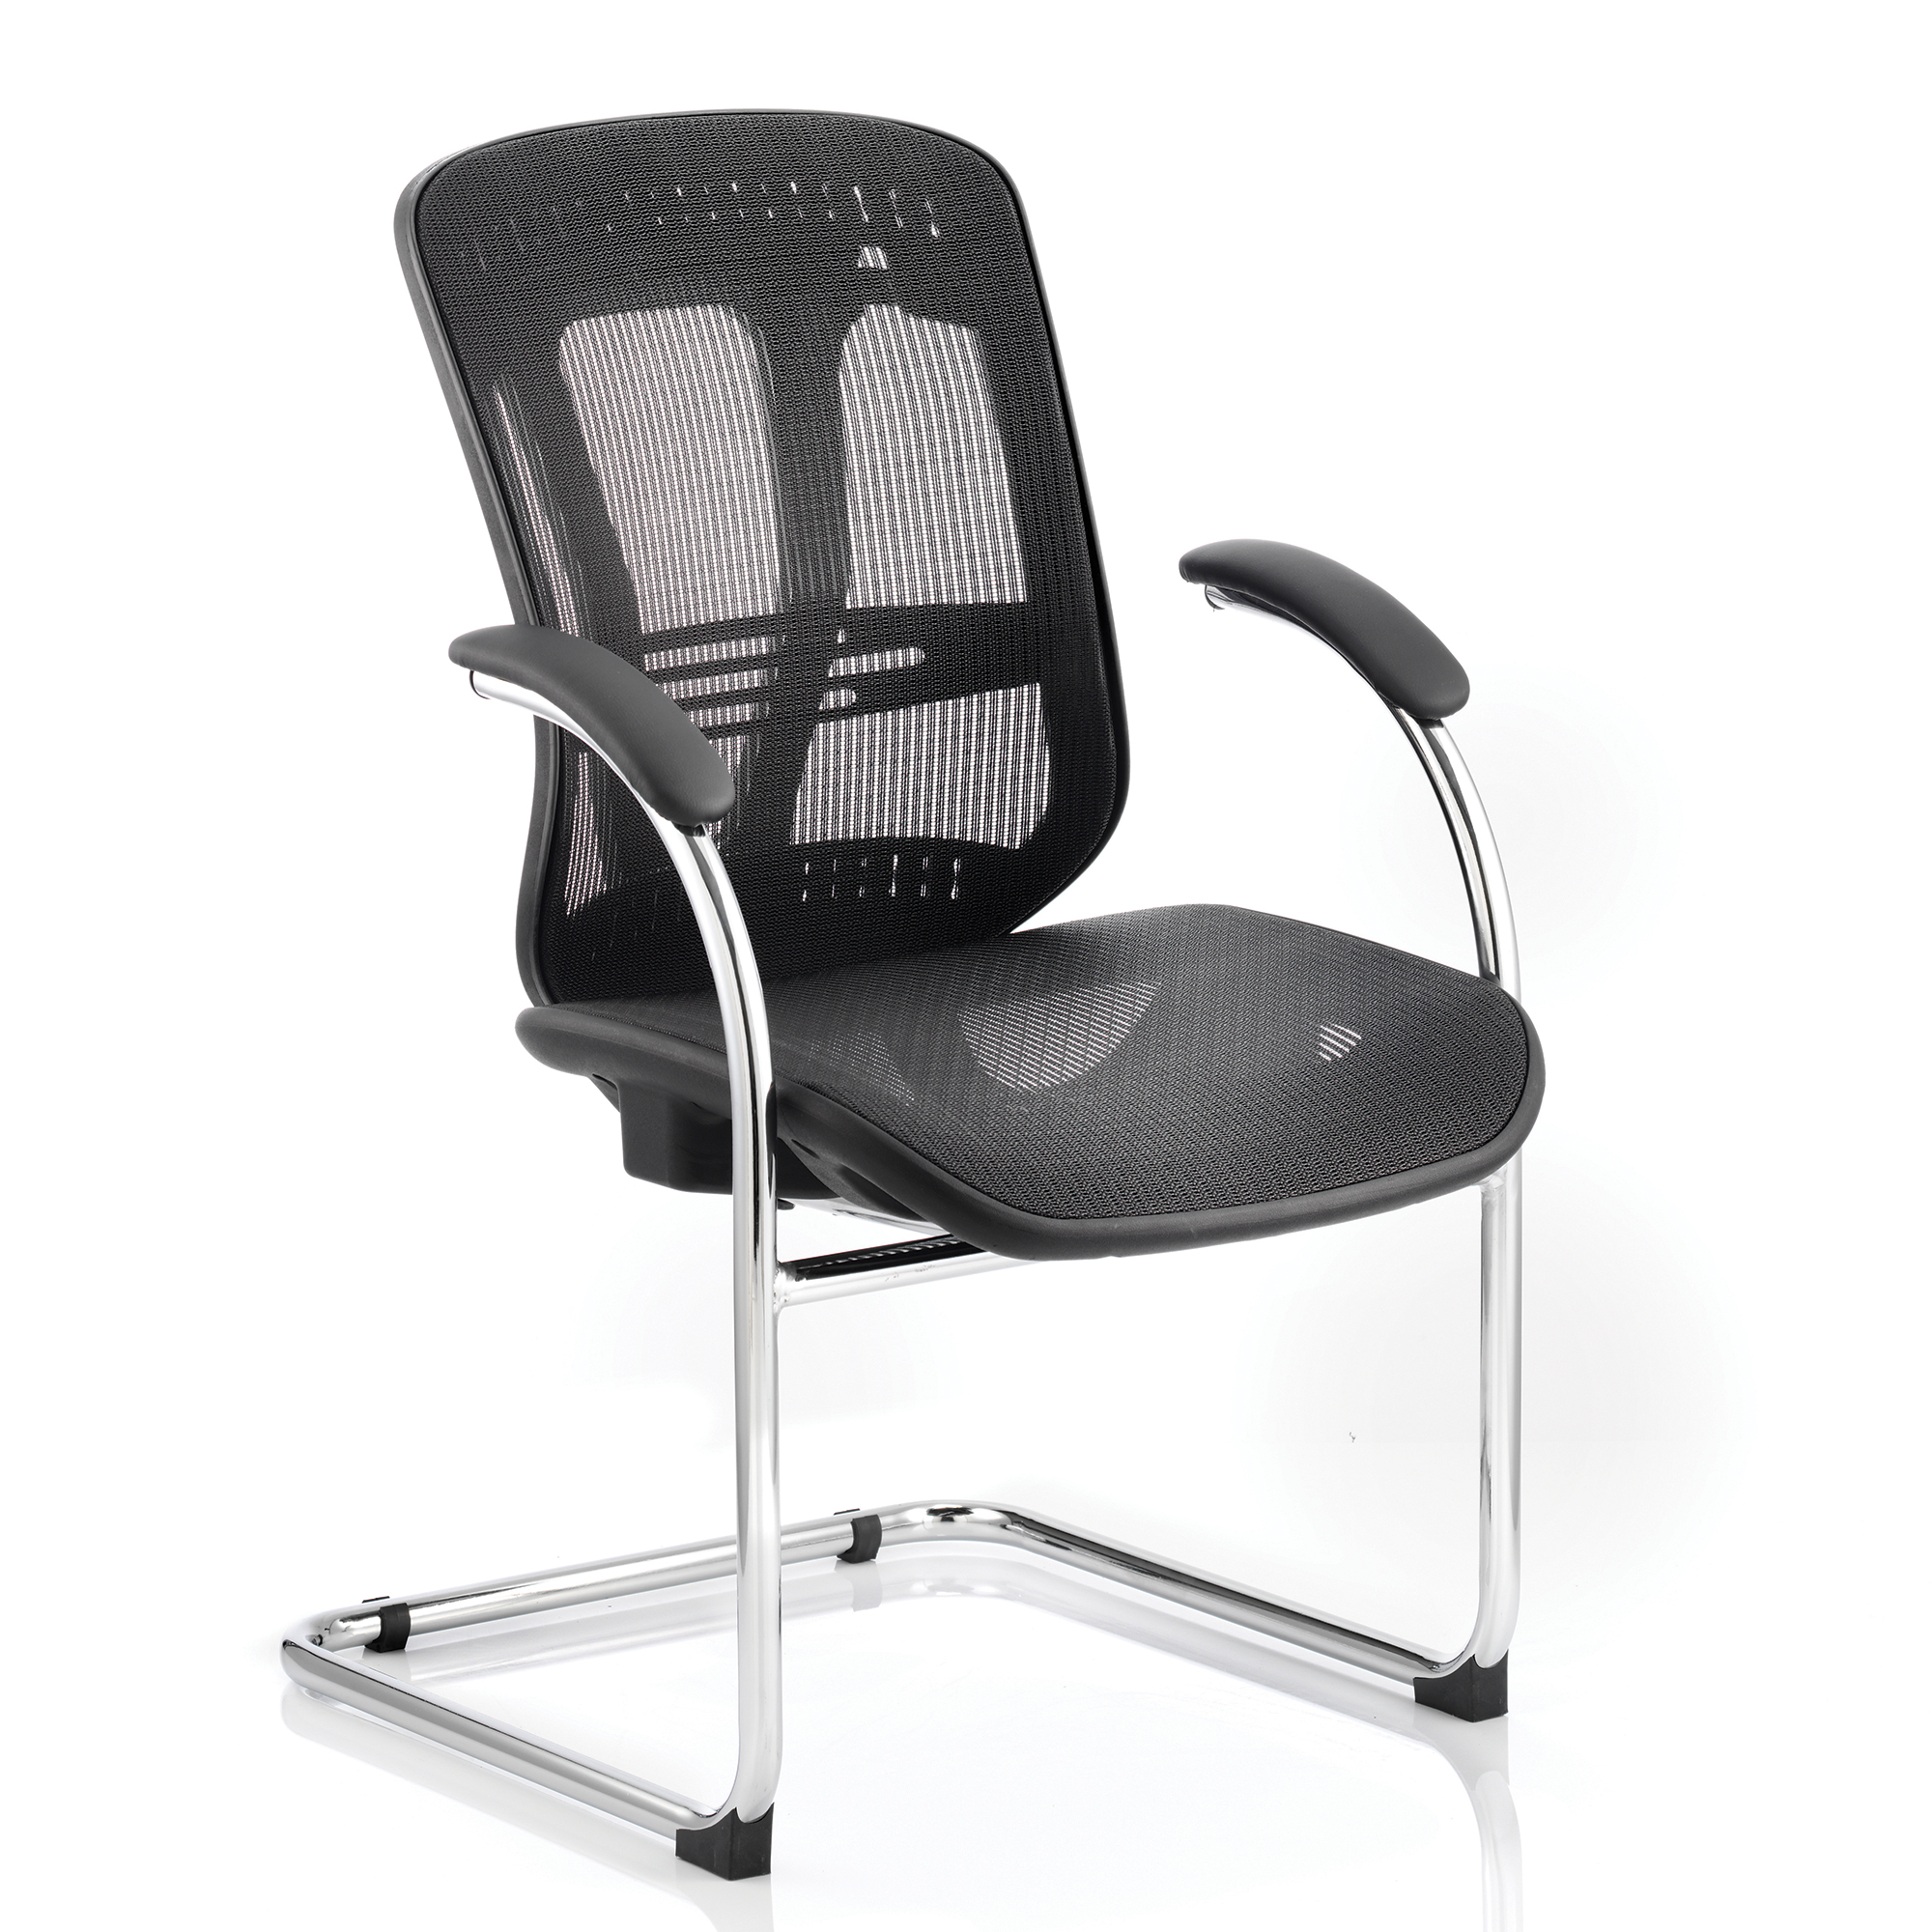 Adroit Mirage Cantilever Chair With Arms Mesh Black Ref BR000092